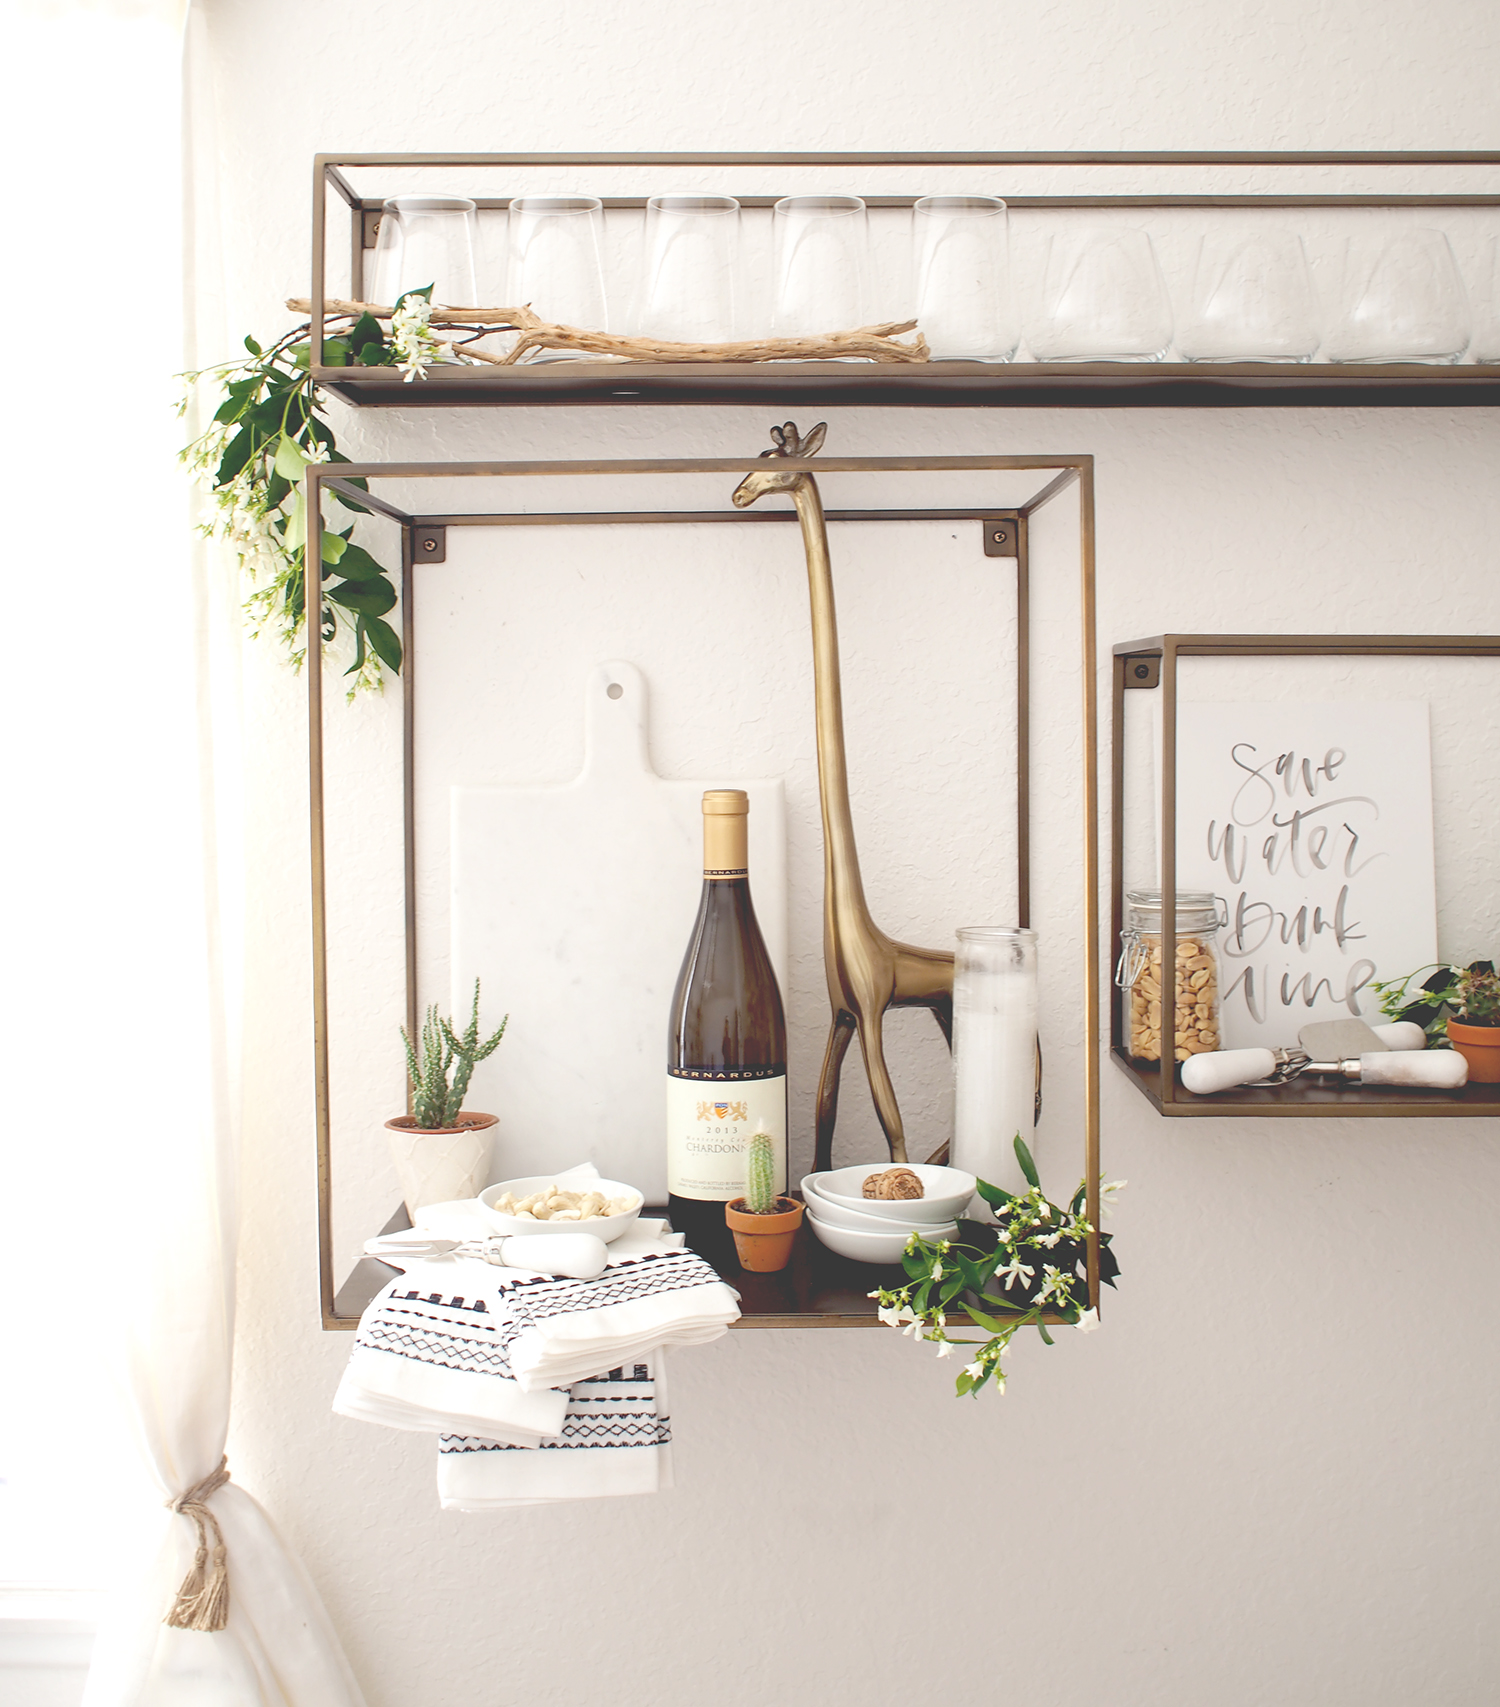 When you don't have room for a bar cart, try an entertainign corner on shelves! | A Fabulous Fete